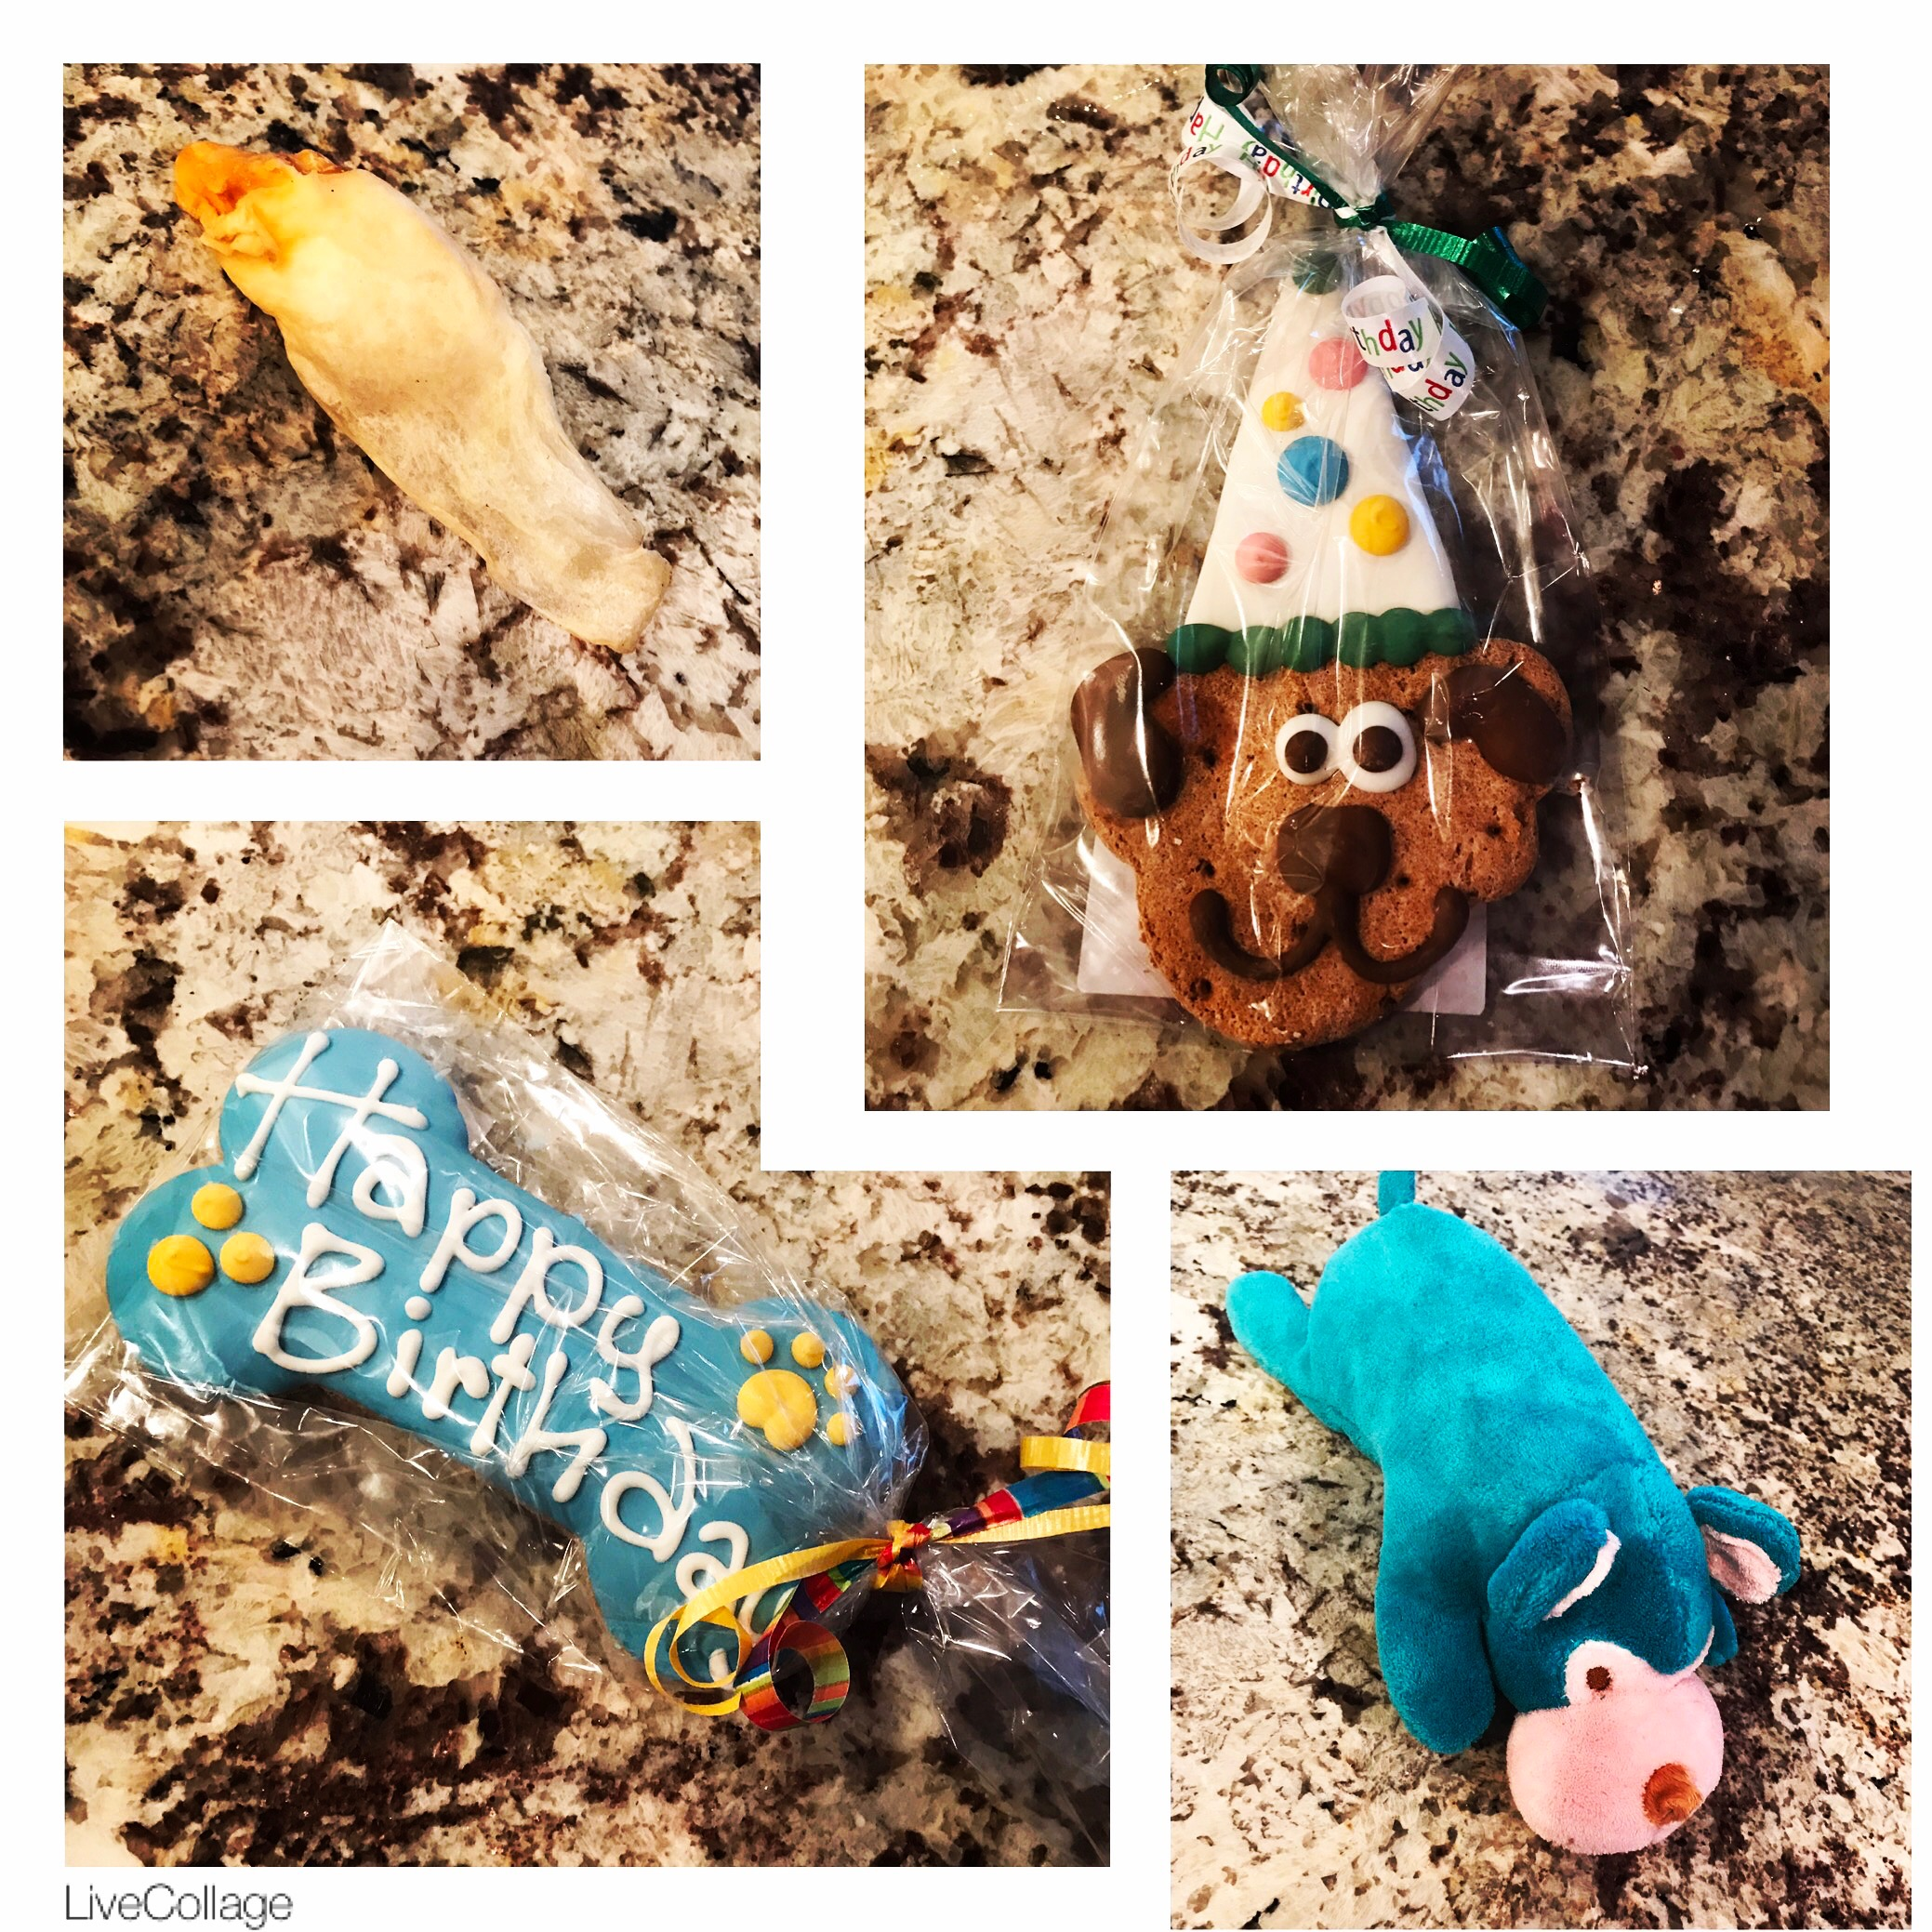 dog birthday presents dogs love treats and toys and happy birthday cookies